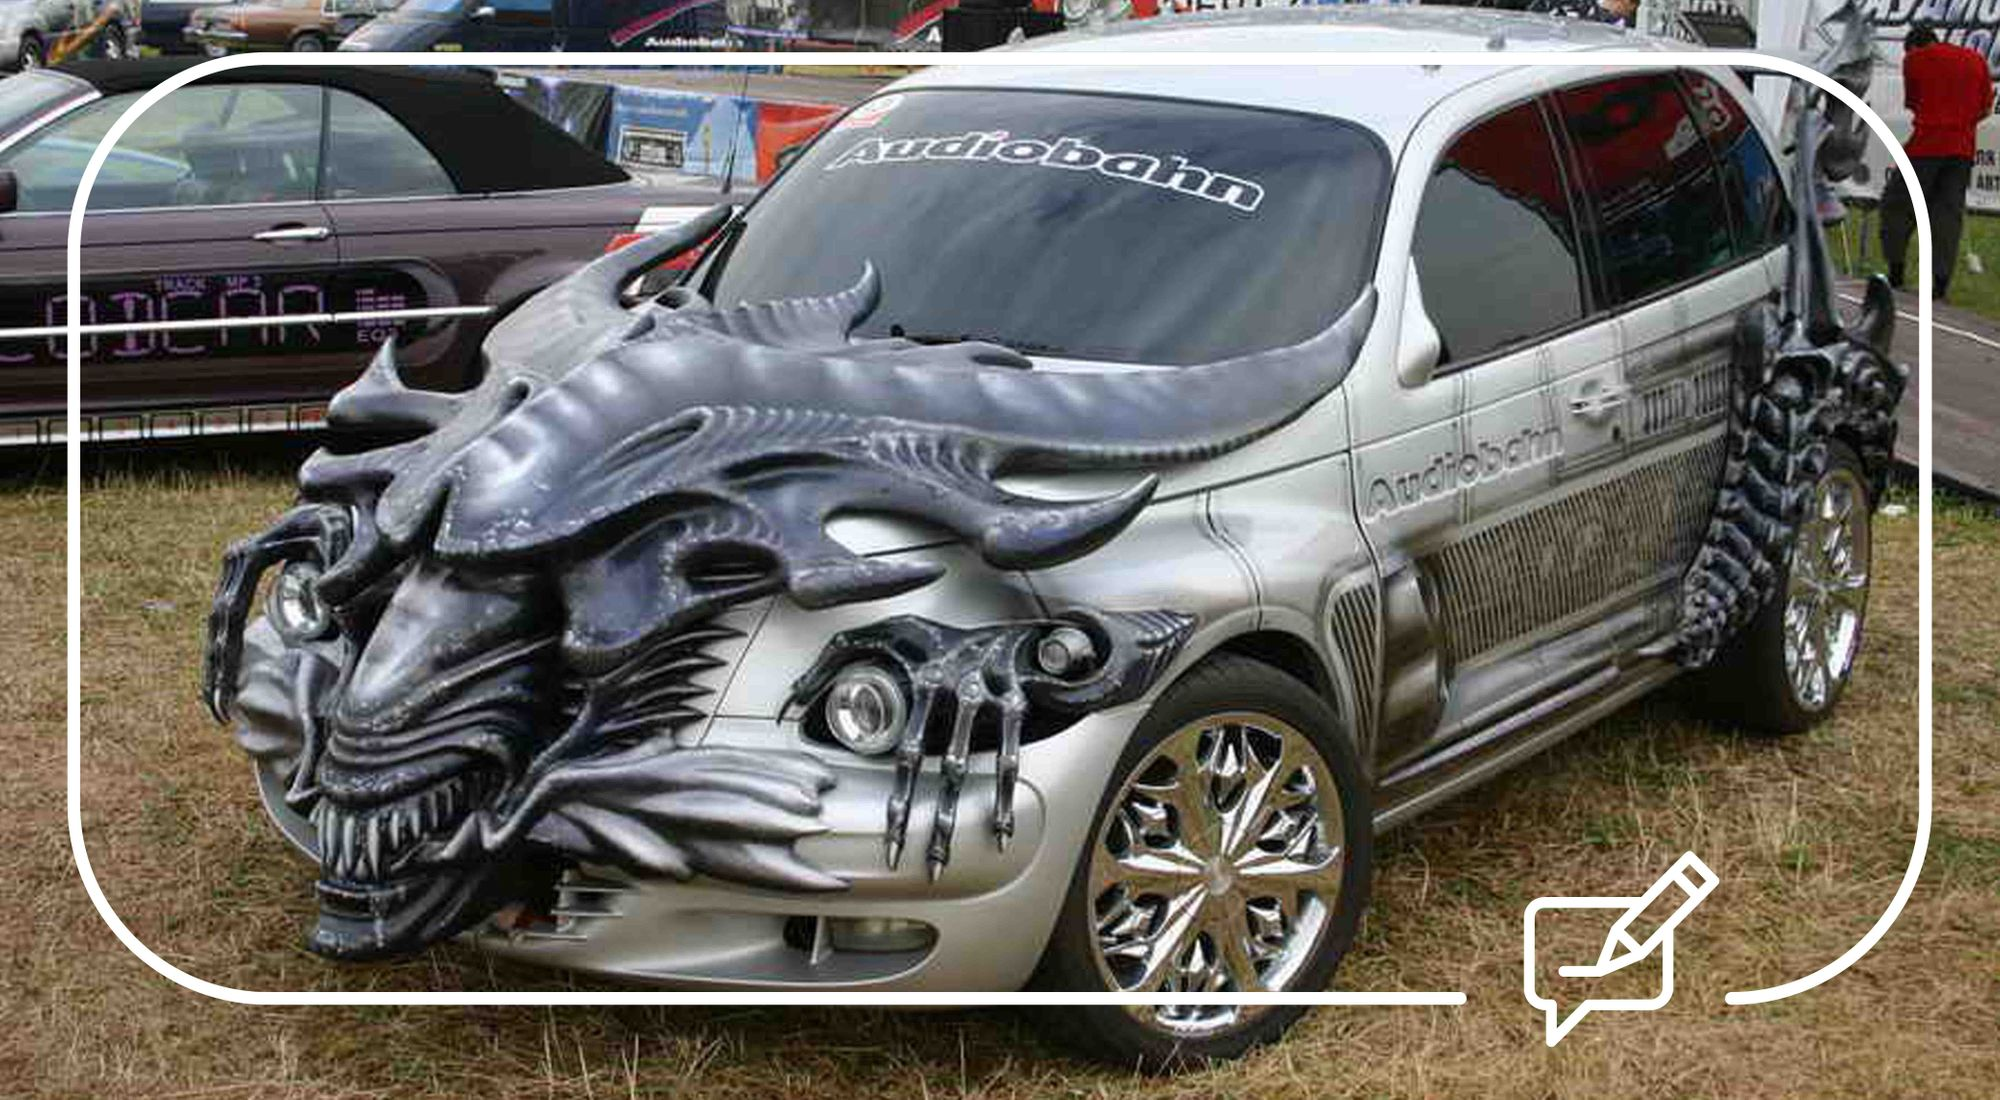 Car mods - The weird, wonderful and downright outrageous!